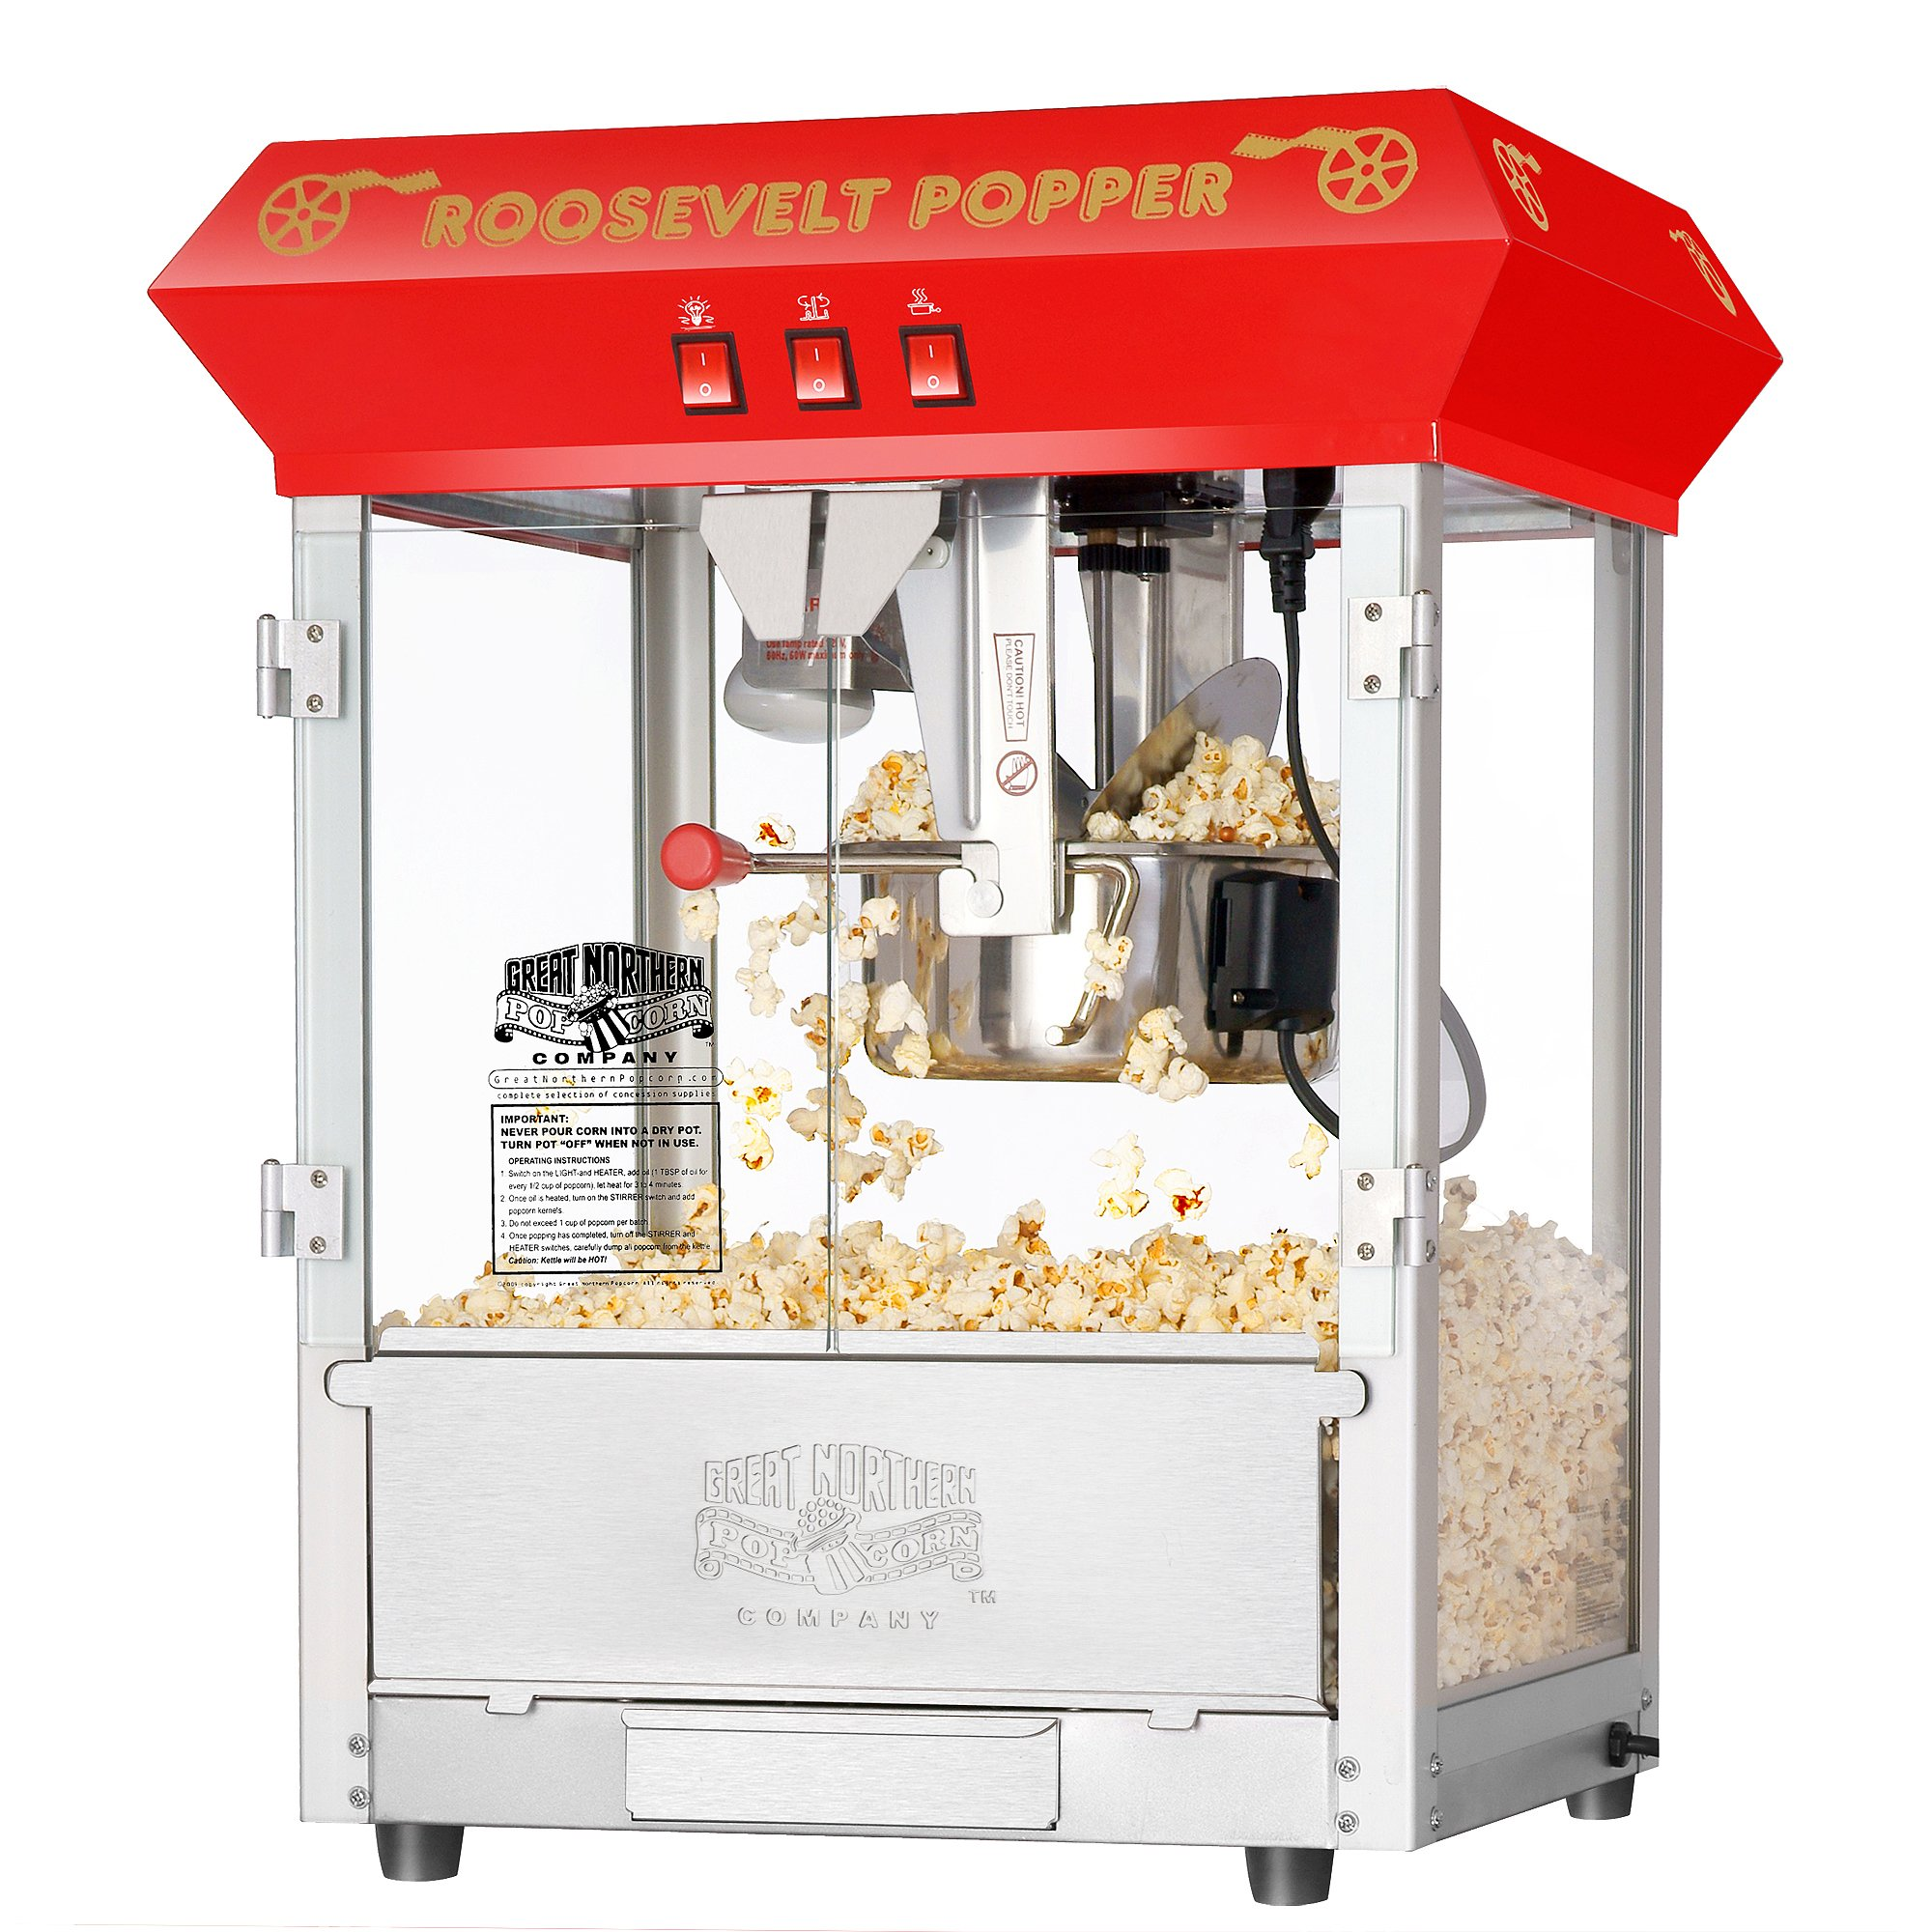 Great Northern Popcorn 6010 Roosevelt Top Antique Style Popcorn Popper Machine, 8-Ounce by Great Northern Popcorn Company